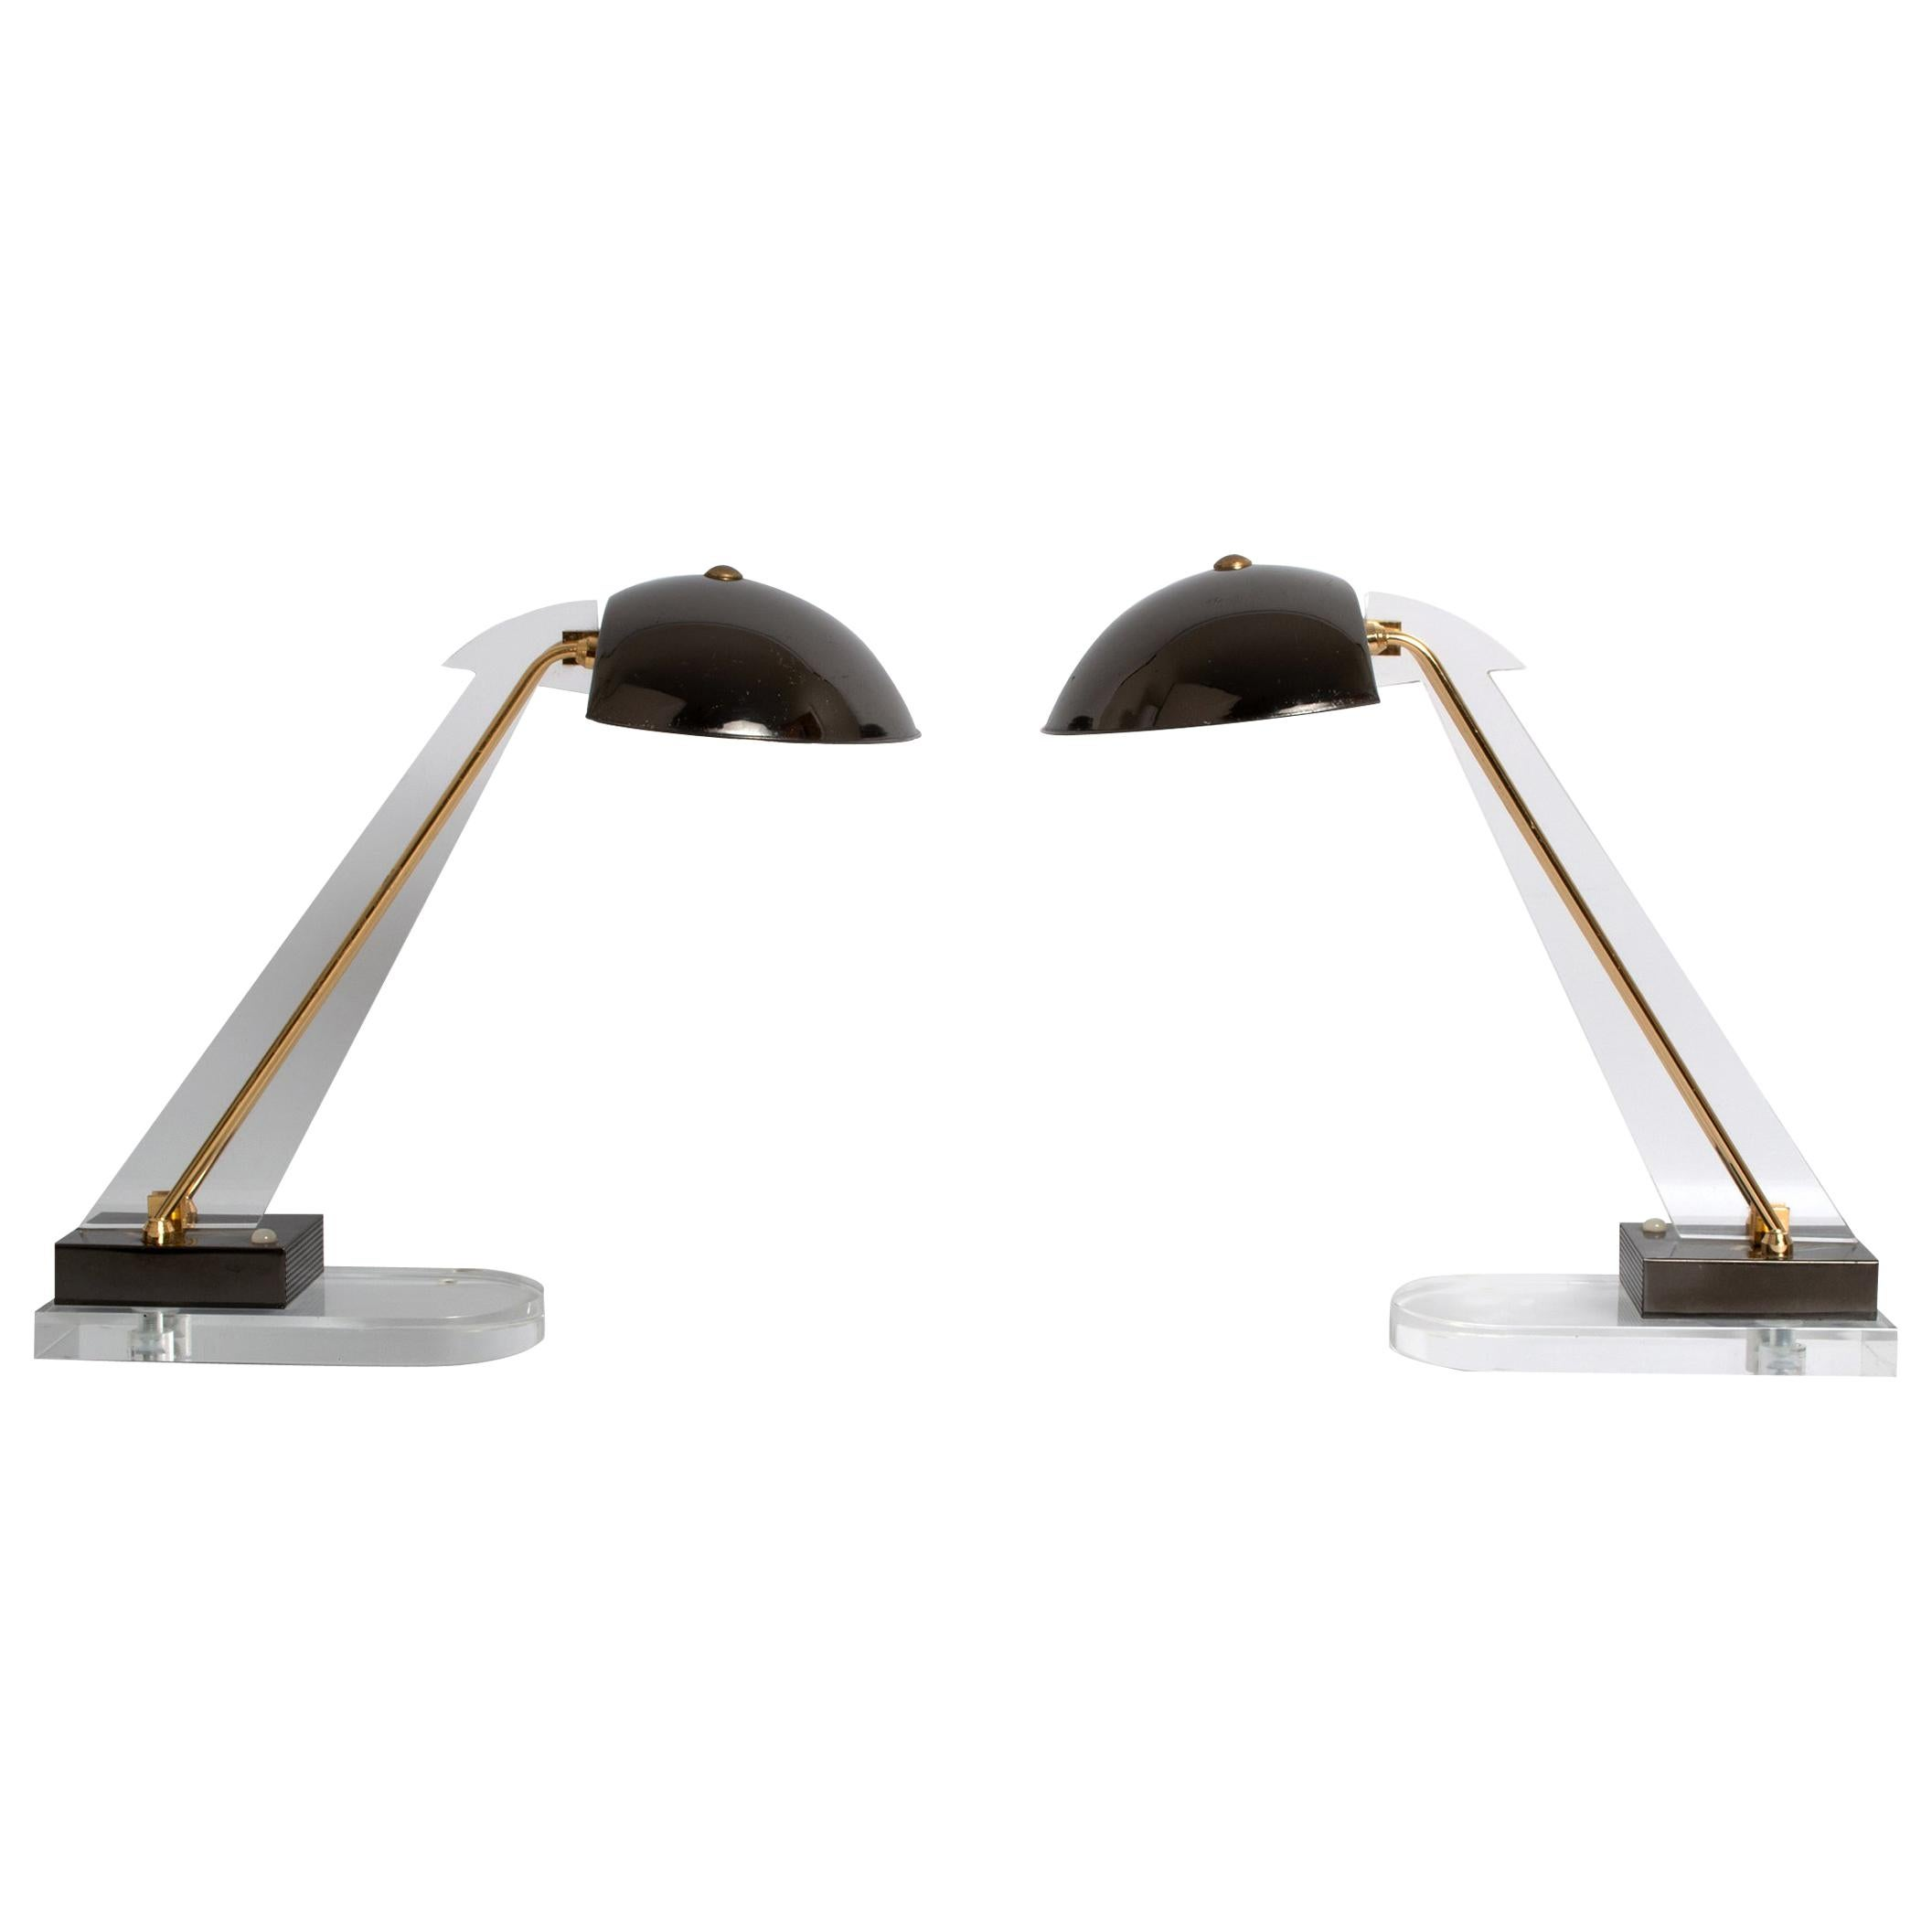 Pair of Midcentury Lucite Desk Lamps by Angelo Lelii for Arredoluce, Italy, 1950